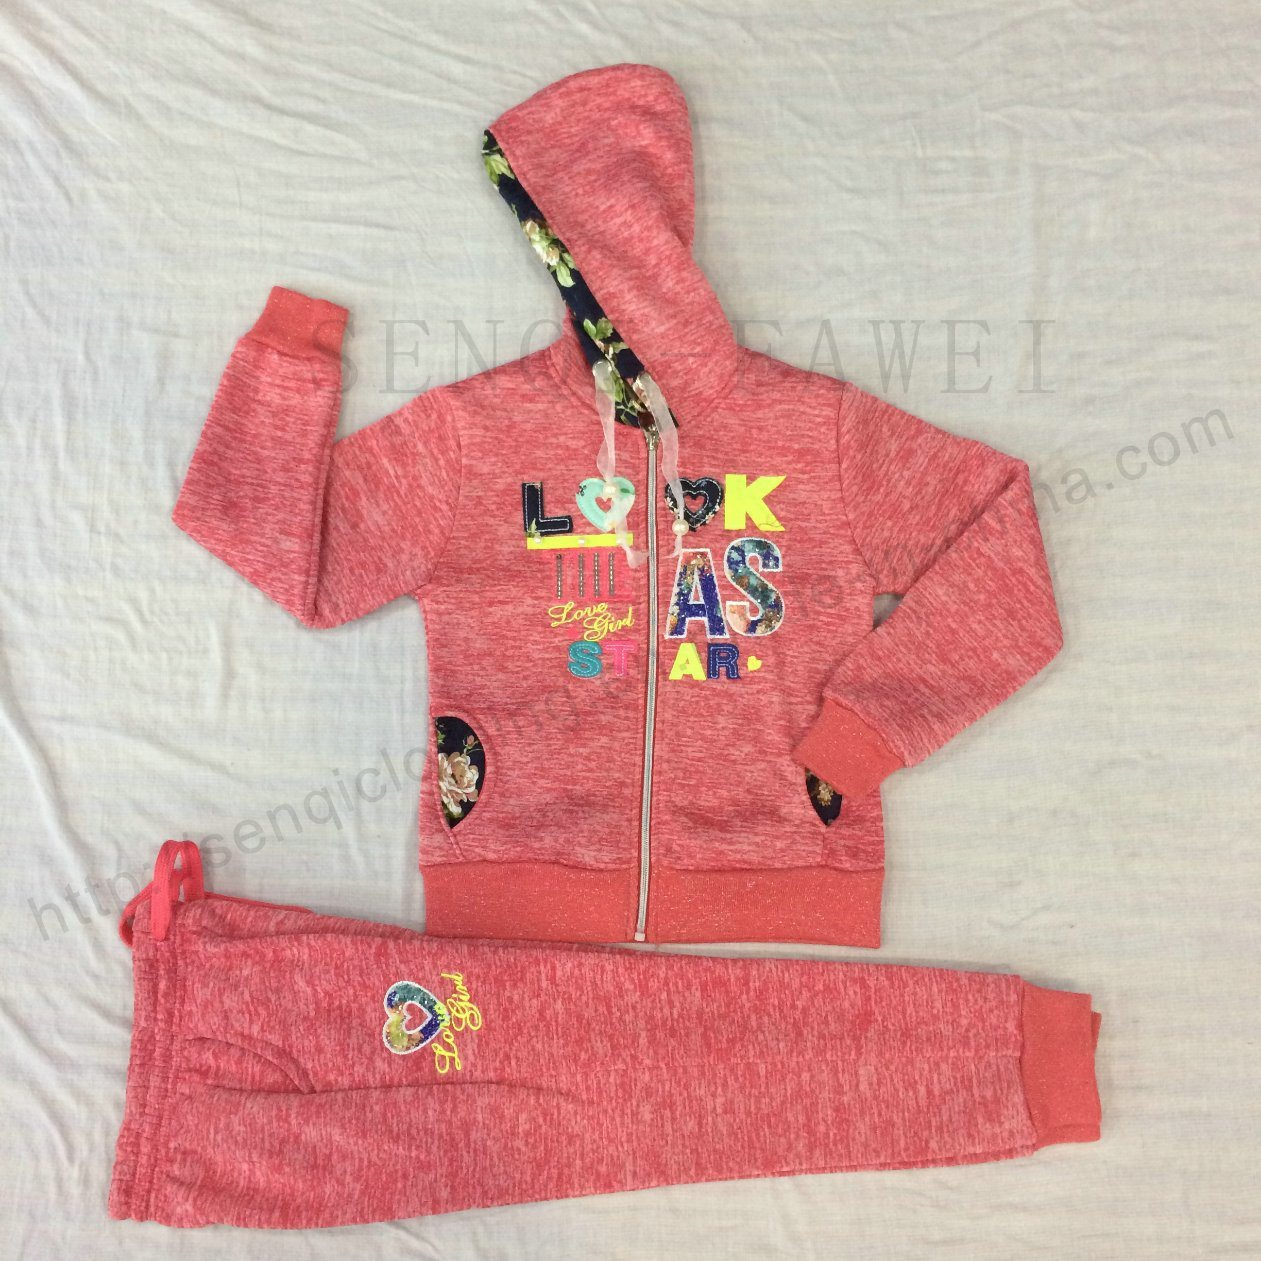 Winter Girl Children′s Sports Suit Wear with Lace in Kids Clothes Sq-6664